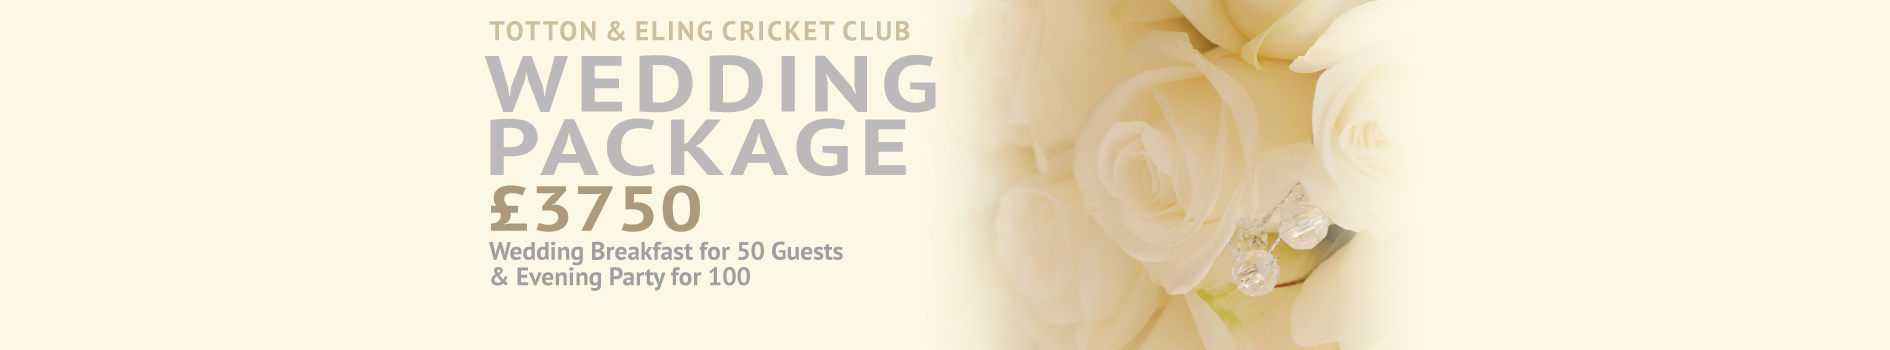 Weddings Banner 2018